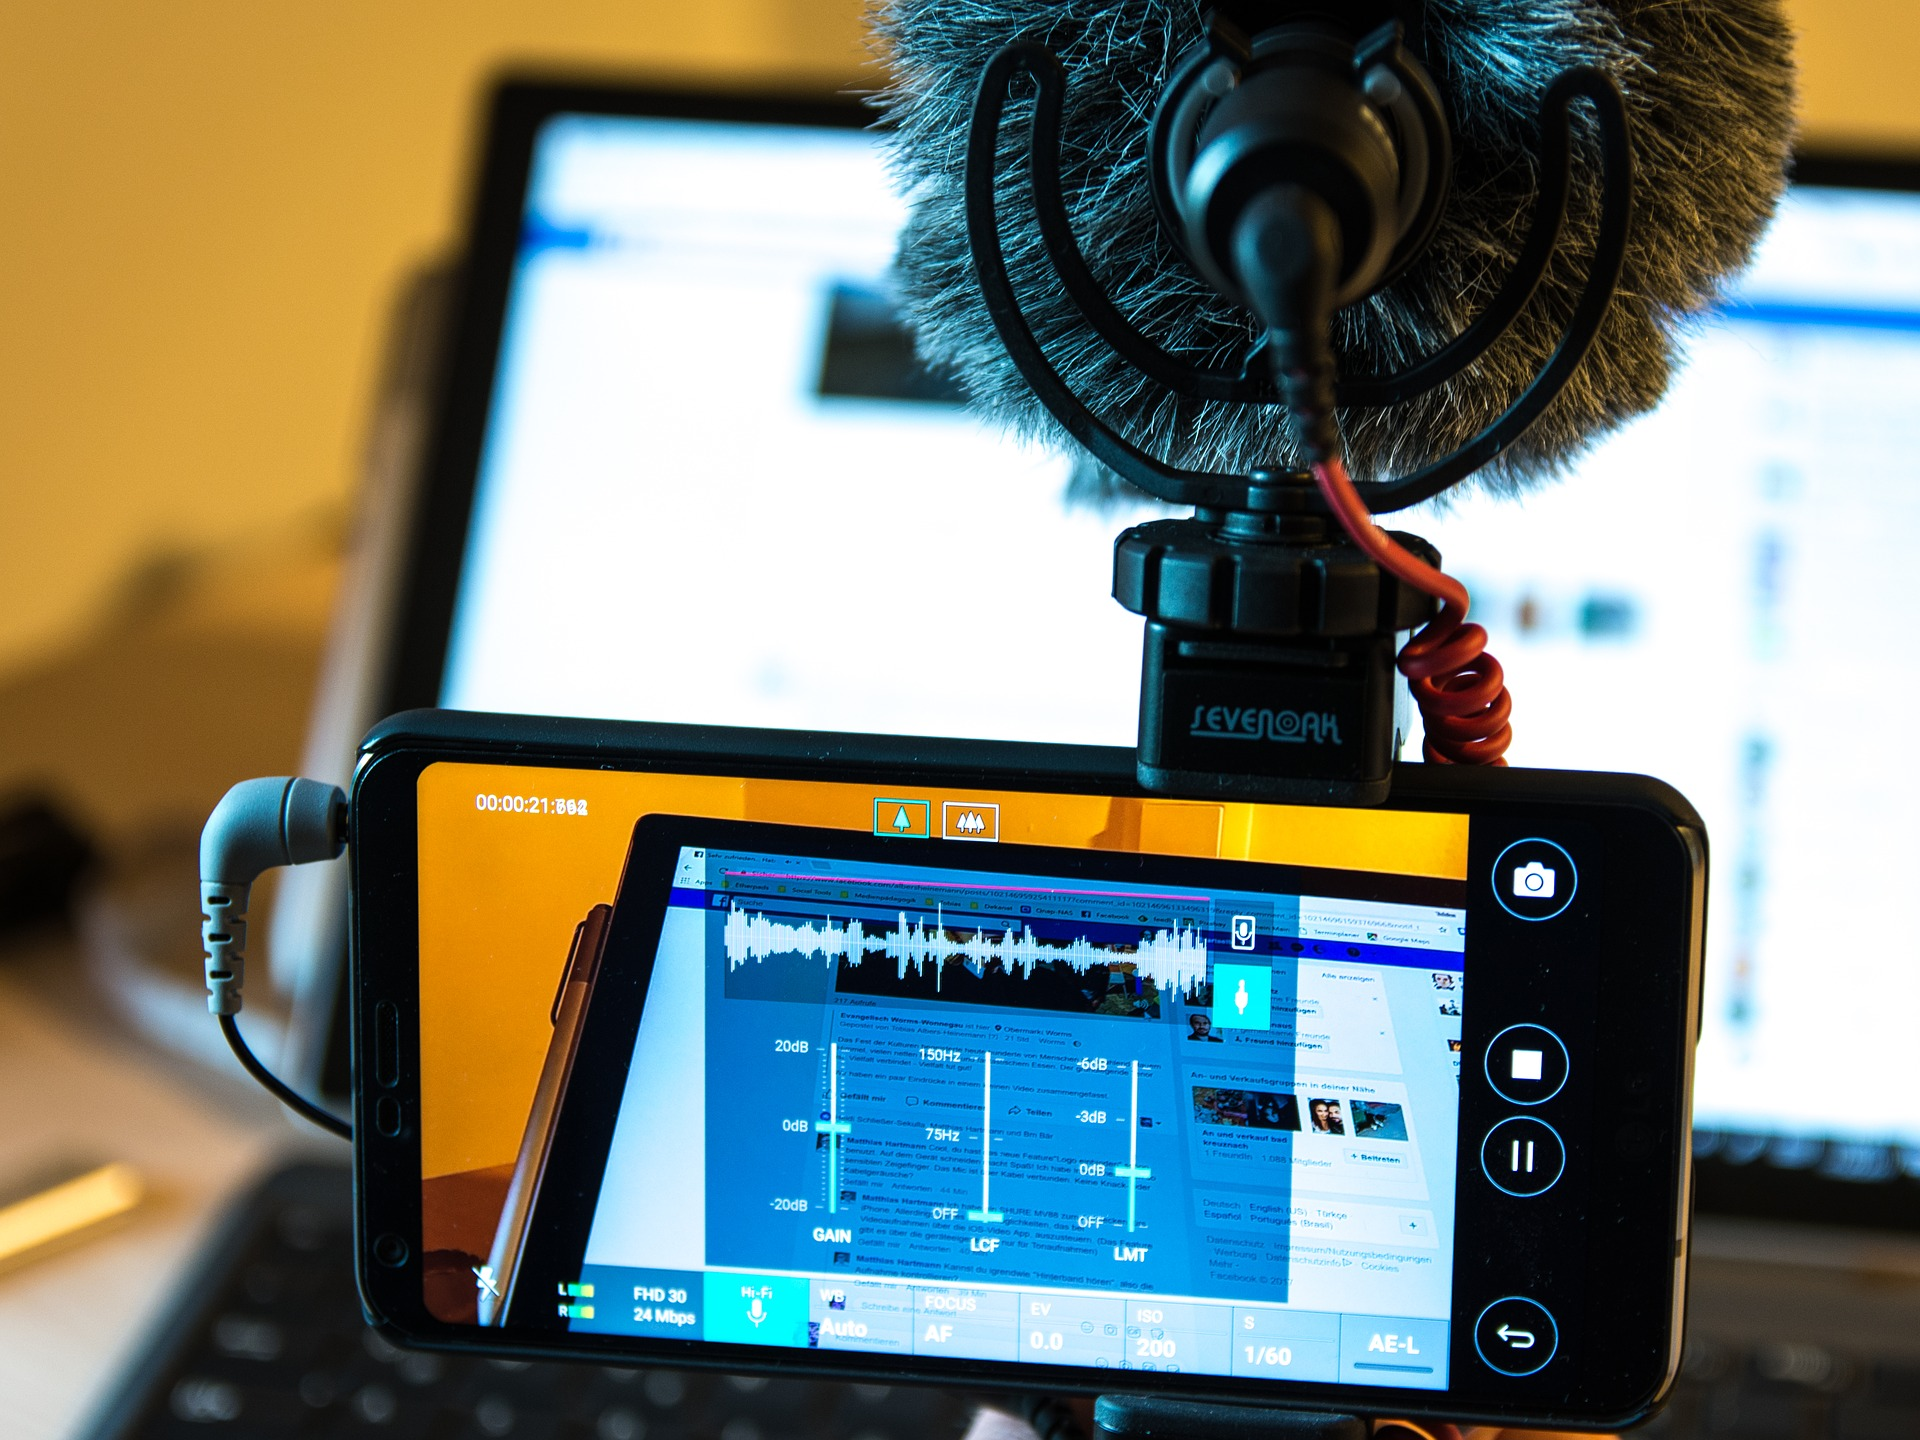 How To Choose The Best Microphone For Your Smartphone